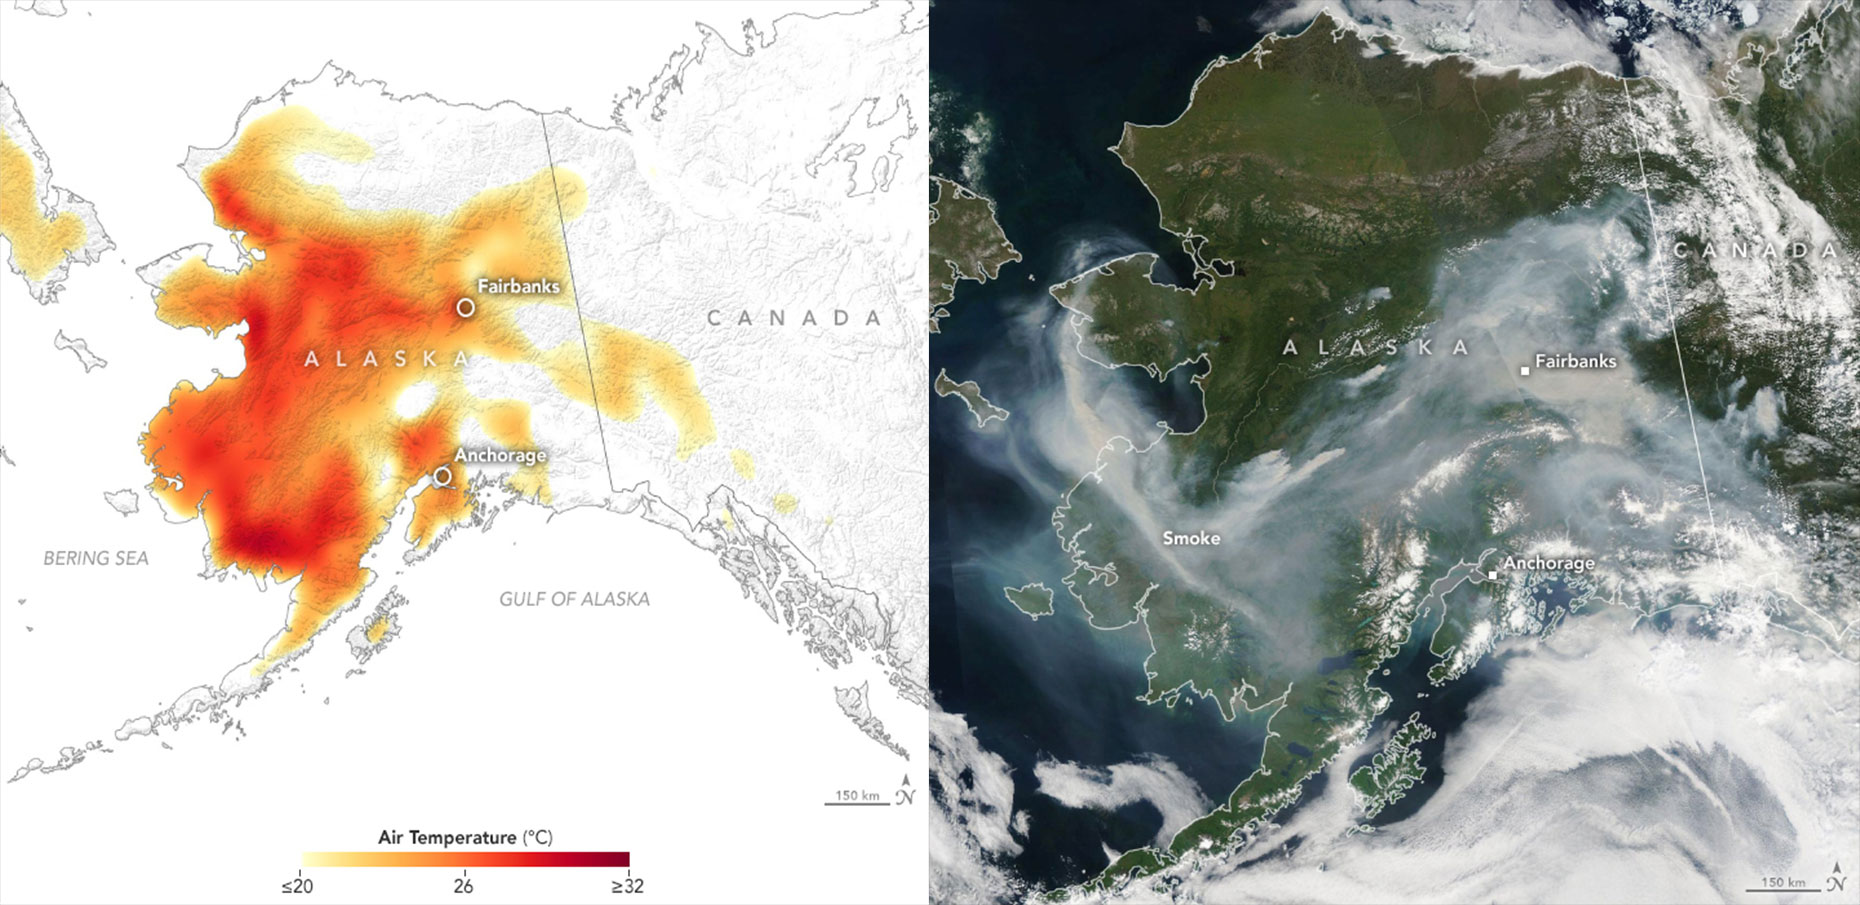 air temperature map + smoke from lightening-triggered wildfires